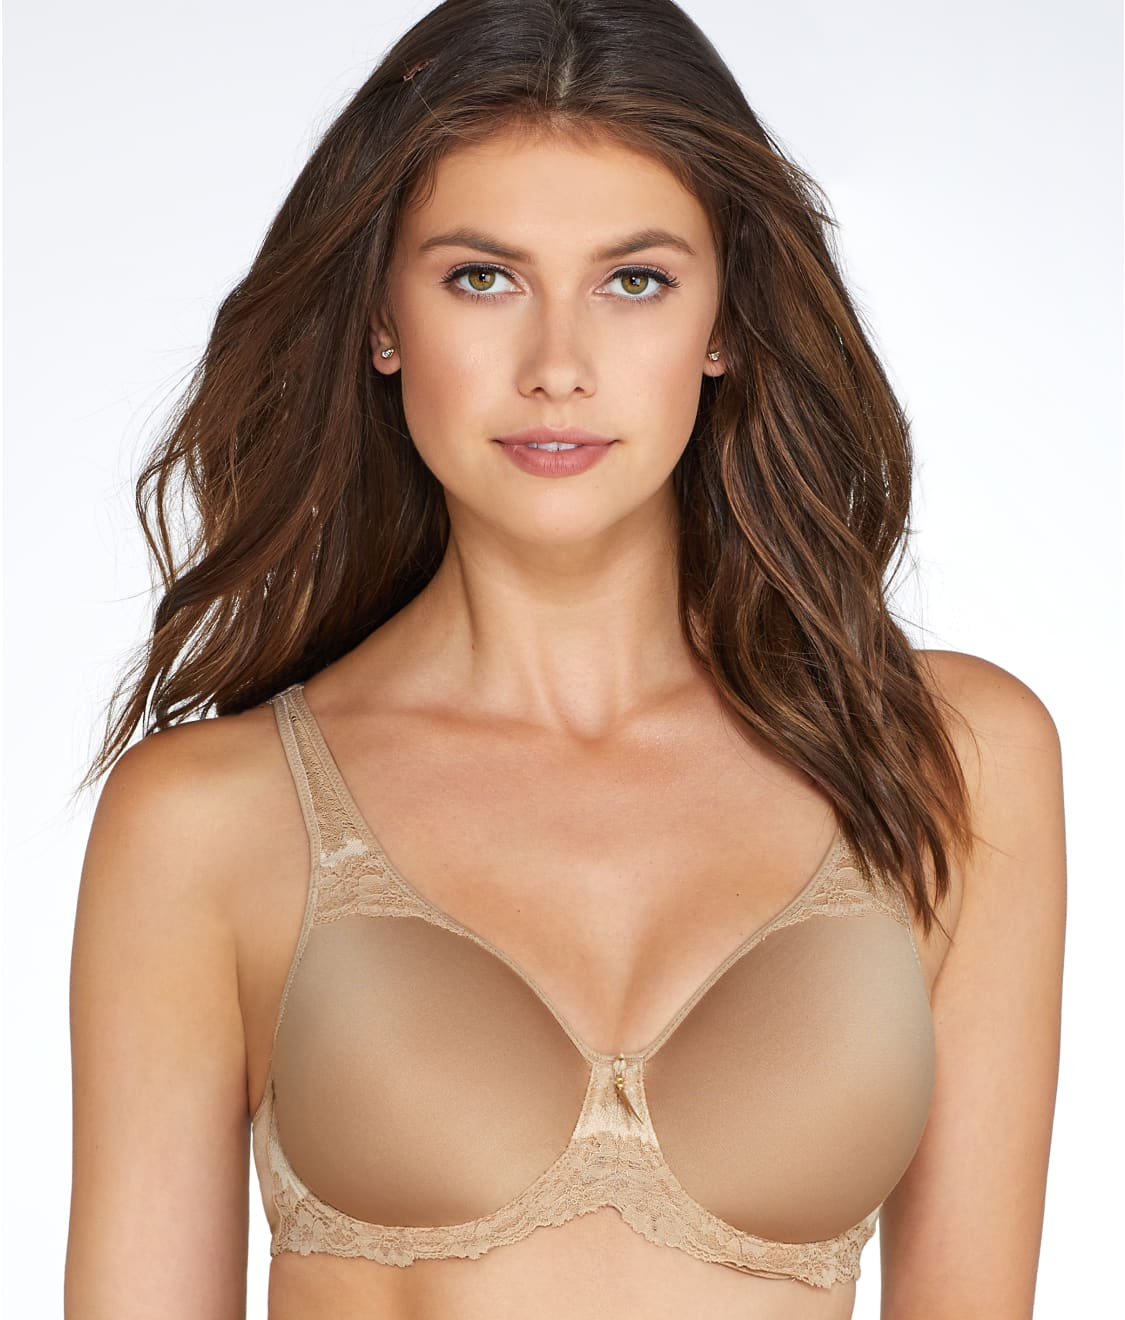 16934dba8fe8b See Basic Benefits T-Shirt Bra in Toast   Sand